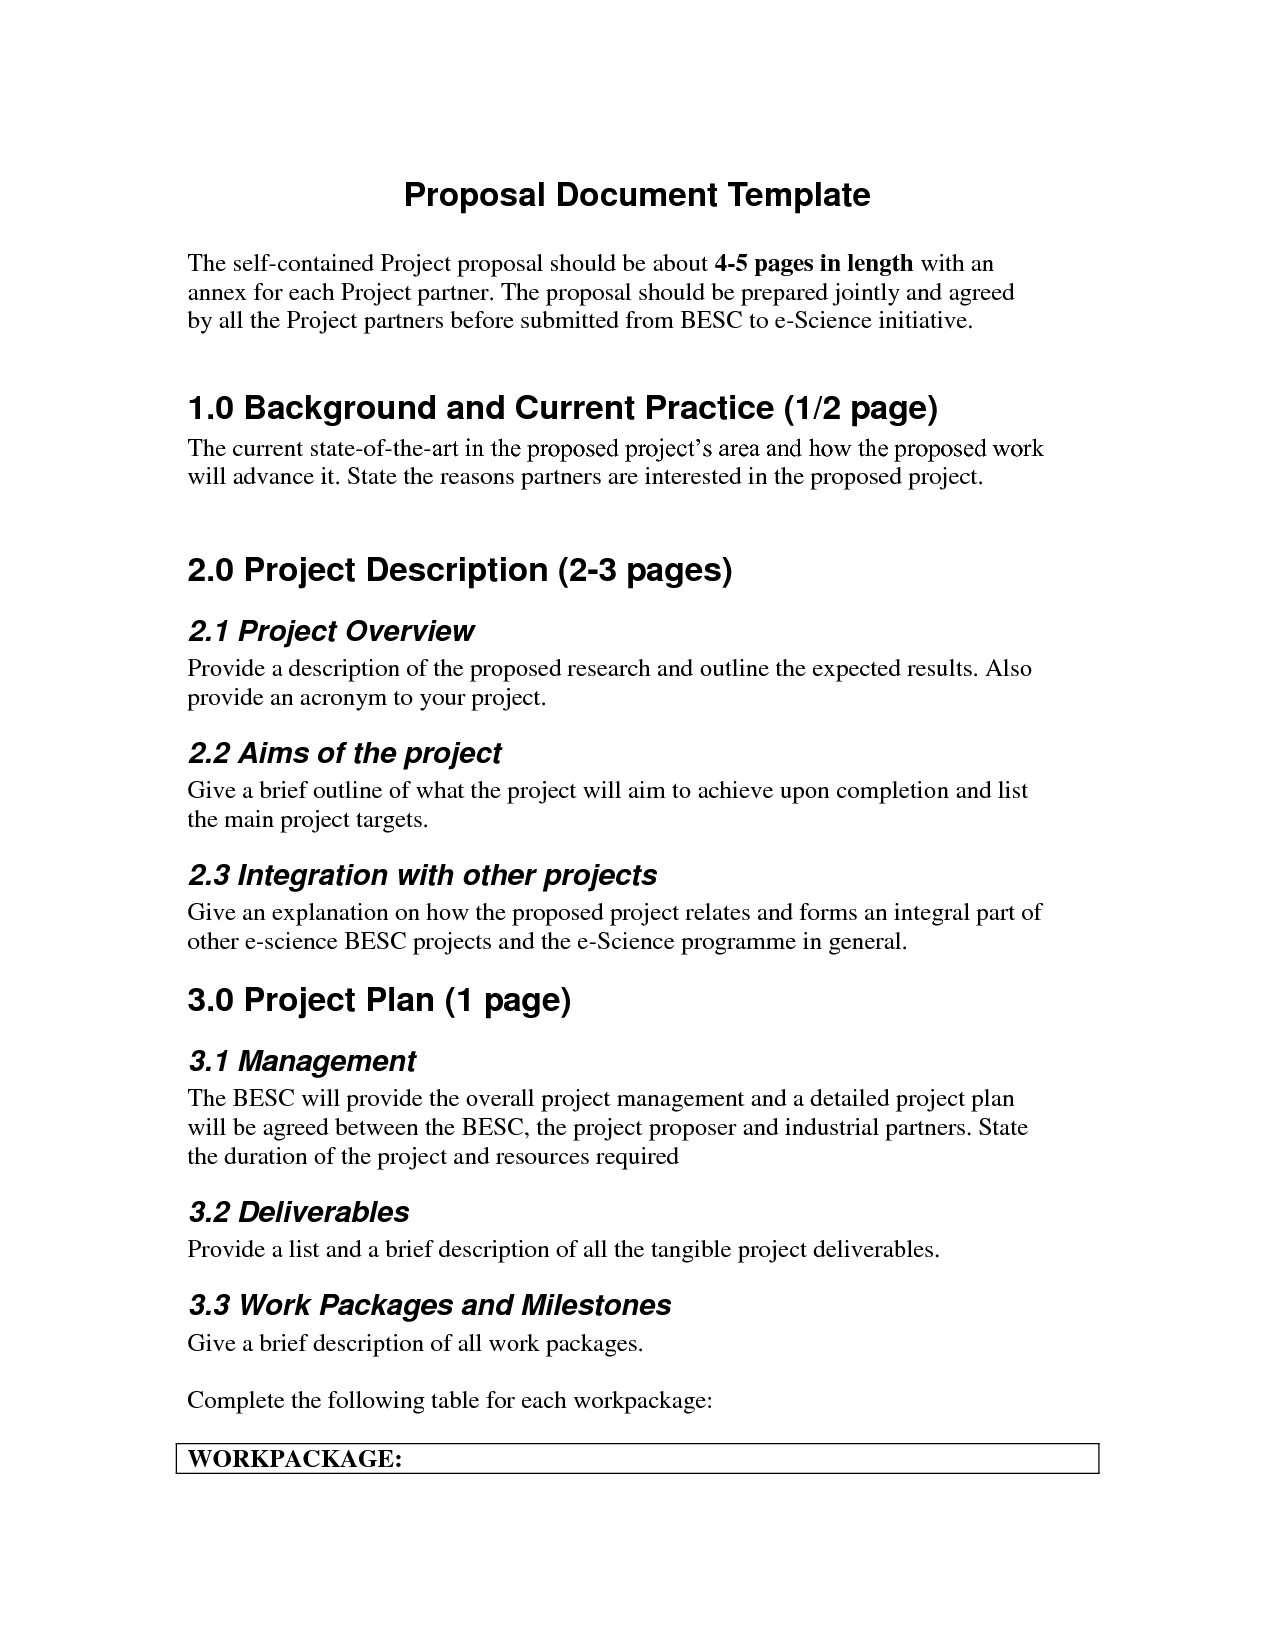 Essay proposal template proposal essay topics before students